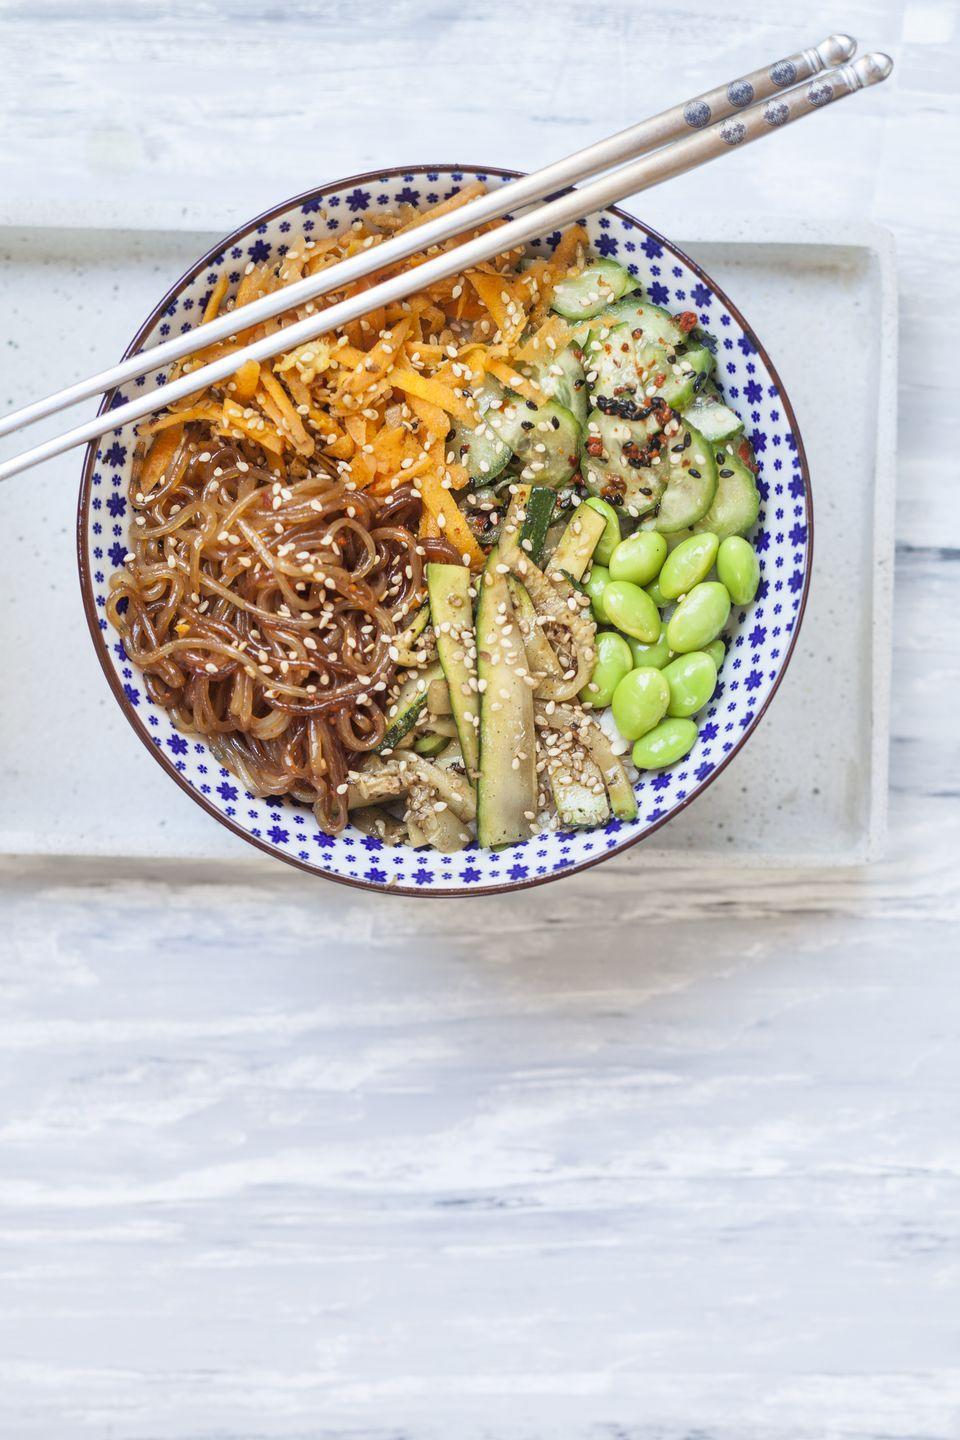 "<p>These Asian noodles have only 22 calories and almost 5 grams of fiber per cup, making them substantially healthier than regular pasta. They also don't require much prep—drain and rinse for cold recipes or pan-fry for hot ones. If you've never made them before, try this <a href=""https://www.prevention.com/food-nutrition/recipes/a20510765/shirataki-noodles-al-pesto/"" rel=""nofollow noopener"" target=""_blank"" data-ylk=""slk:Shirataki Noodles al Pesto"" class=""link rapid-noclick-resp"">Shirataki Noodles al Pesto</a> recipe.</p>"